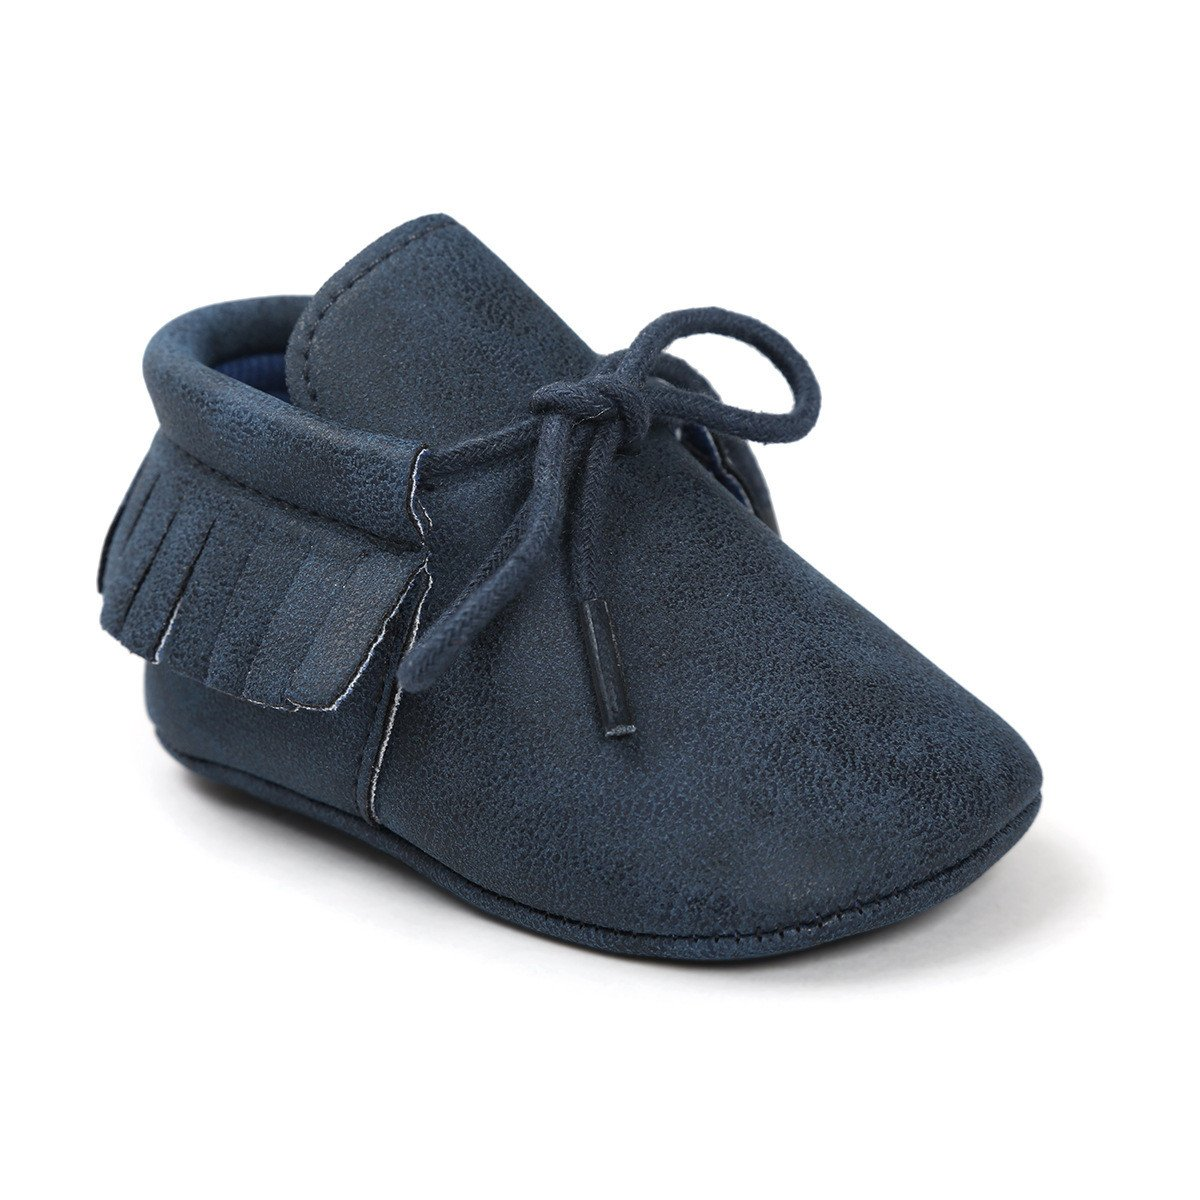 Sabe First Walkers - Unisex Baby Boys Girls Moccasins Soft Sole Tassels Prewalker Anti-Slip Loafer Shoes